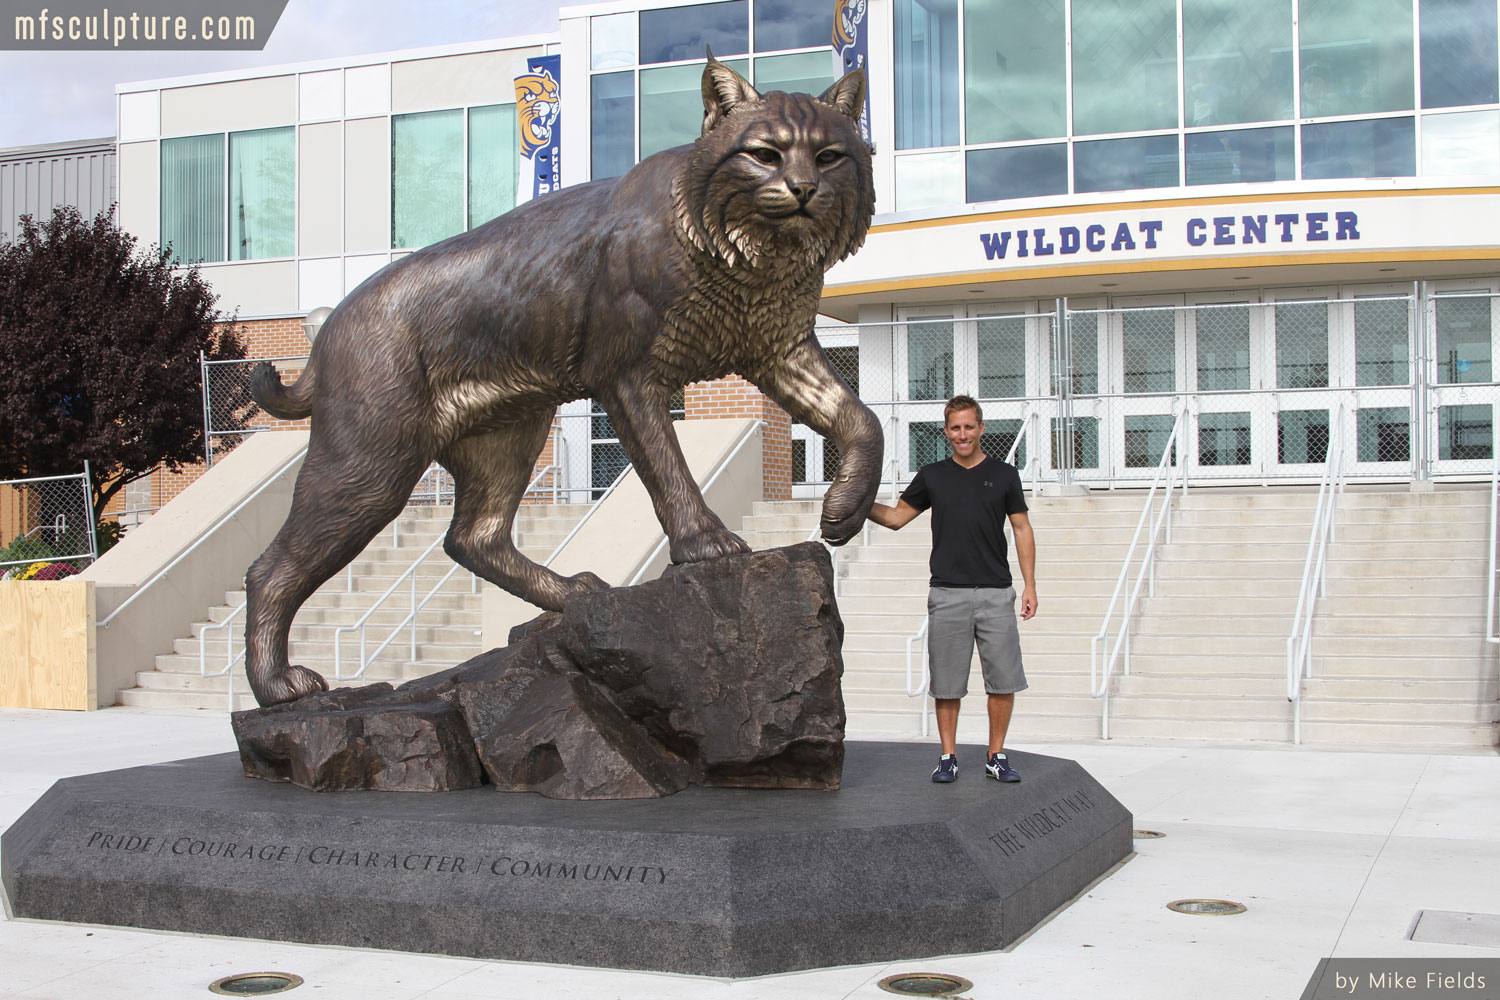 University-Wildcat-Sculpture-Bronze-Mascot-Bobcat